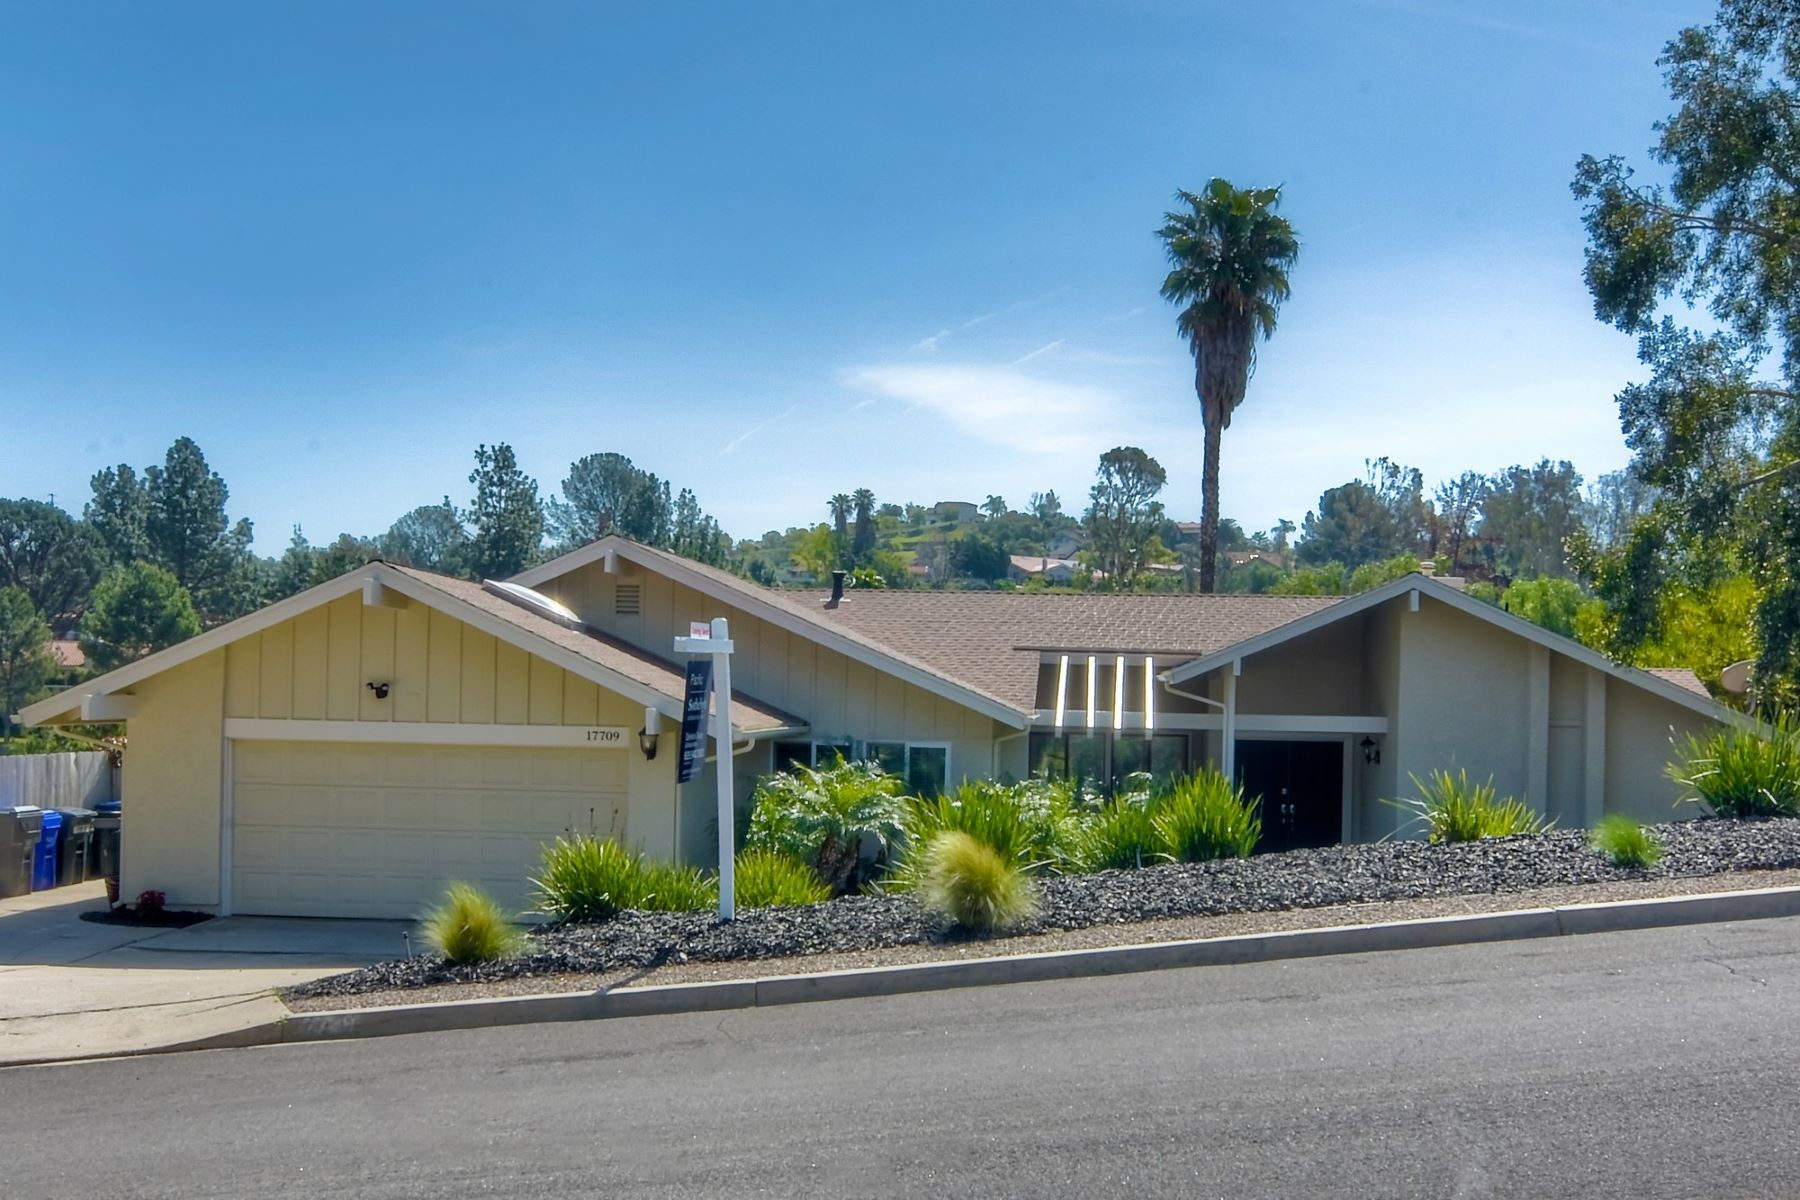 Single Family Homes for Sale at Single and Stunning! 17709 Saint Andrews Drive Poway, California 92064 United States